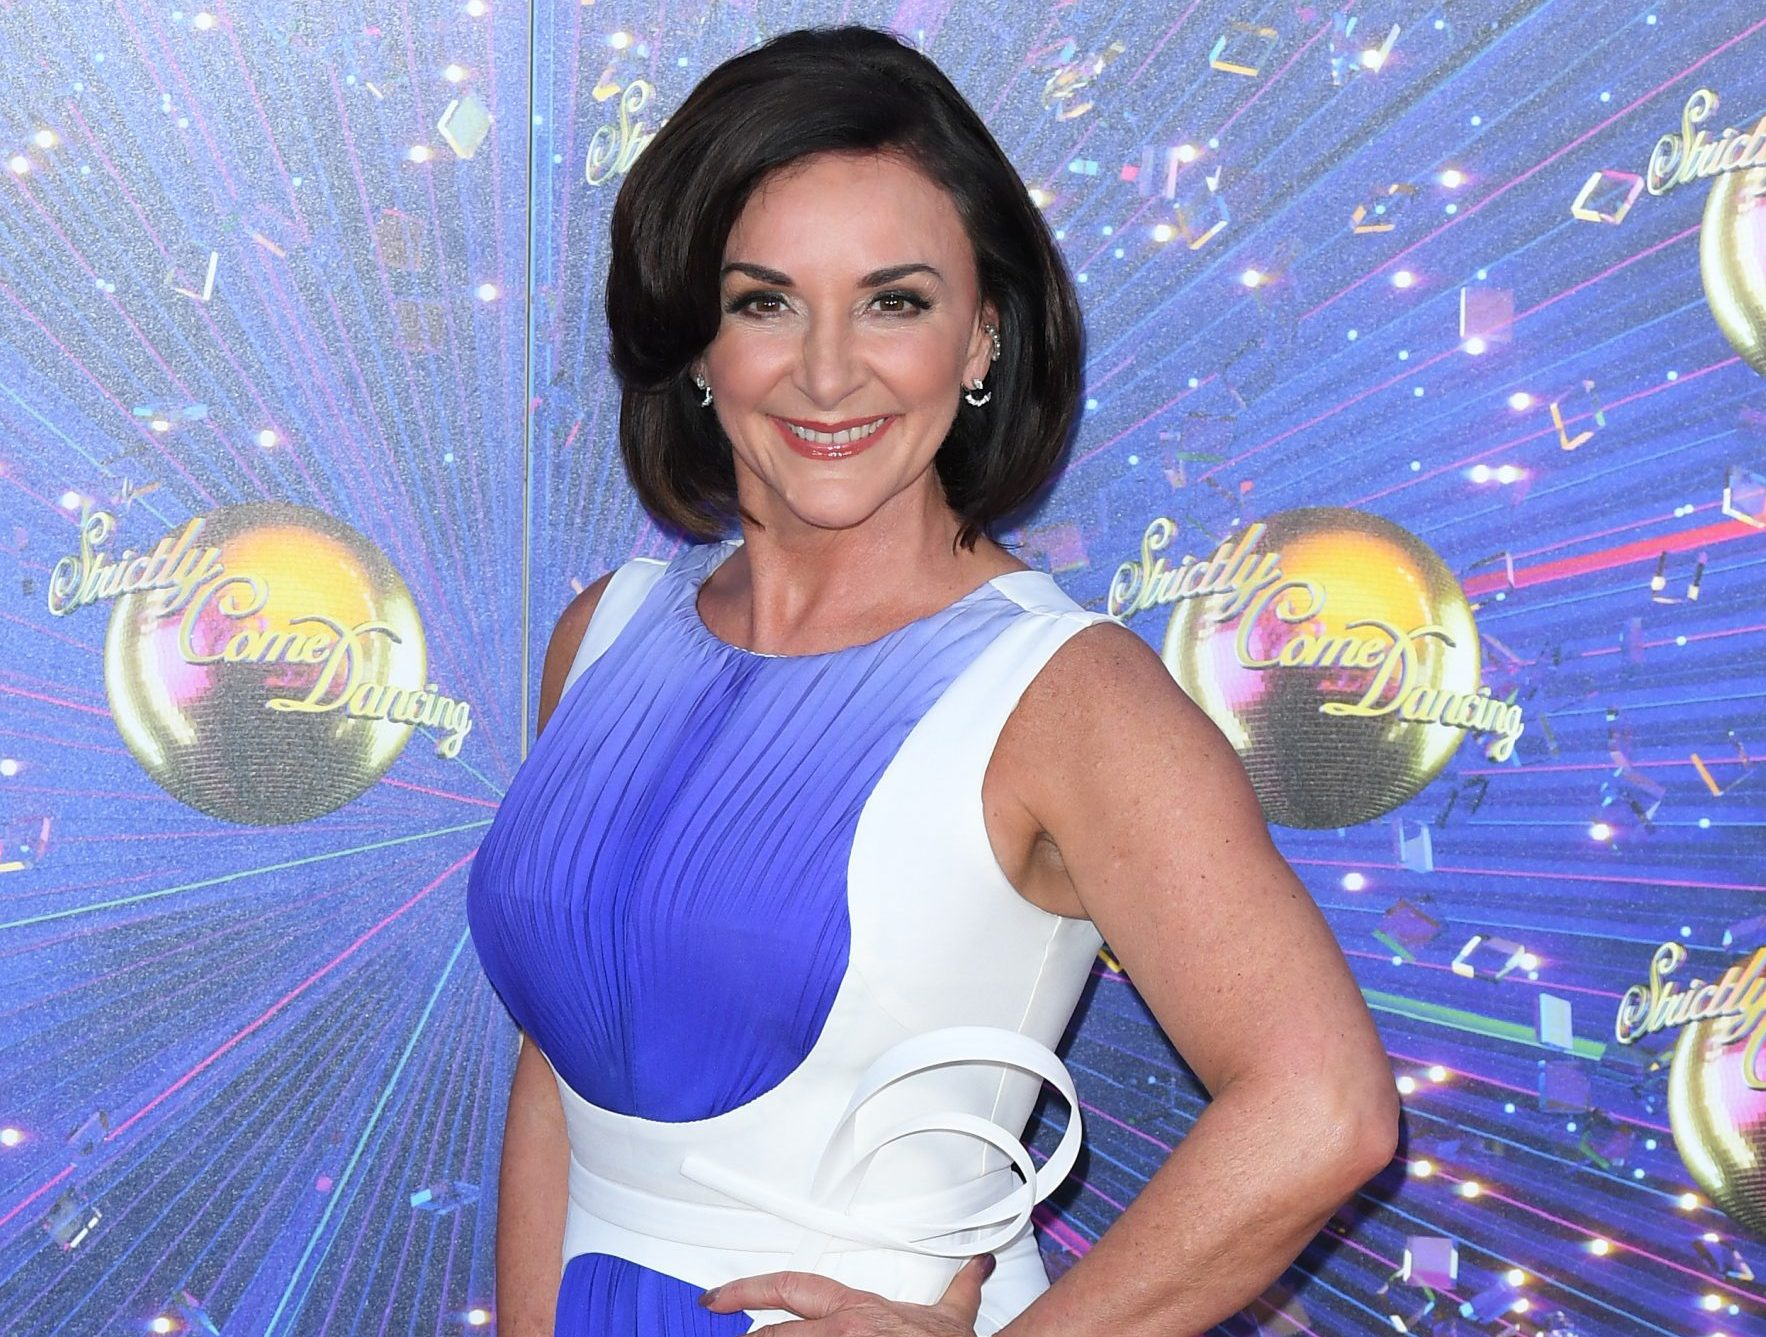 Shirley Ballas reveals she chipped half her tooth on Strictly Come Dancing tour in a rather unexpected way